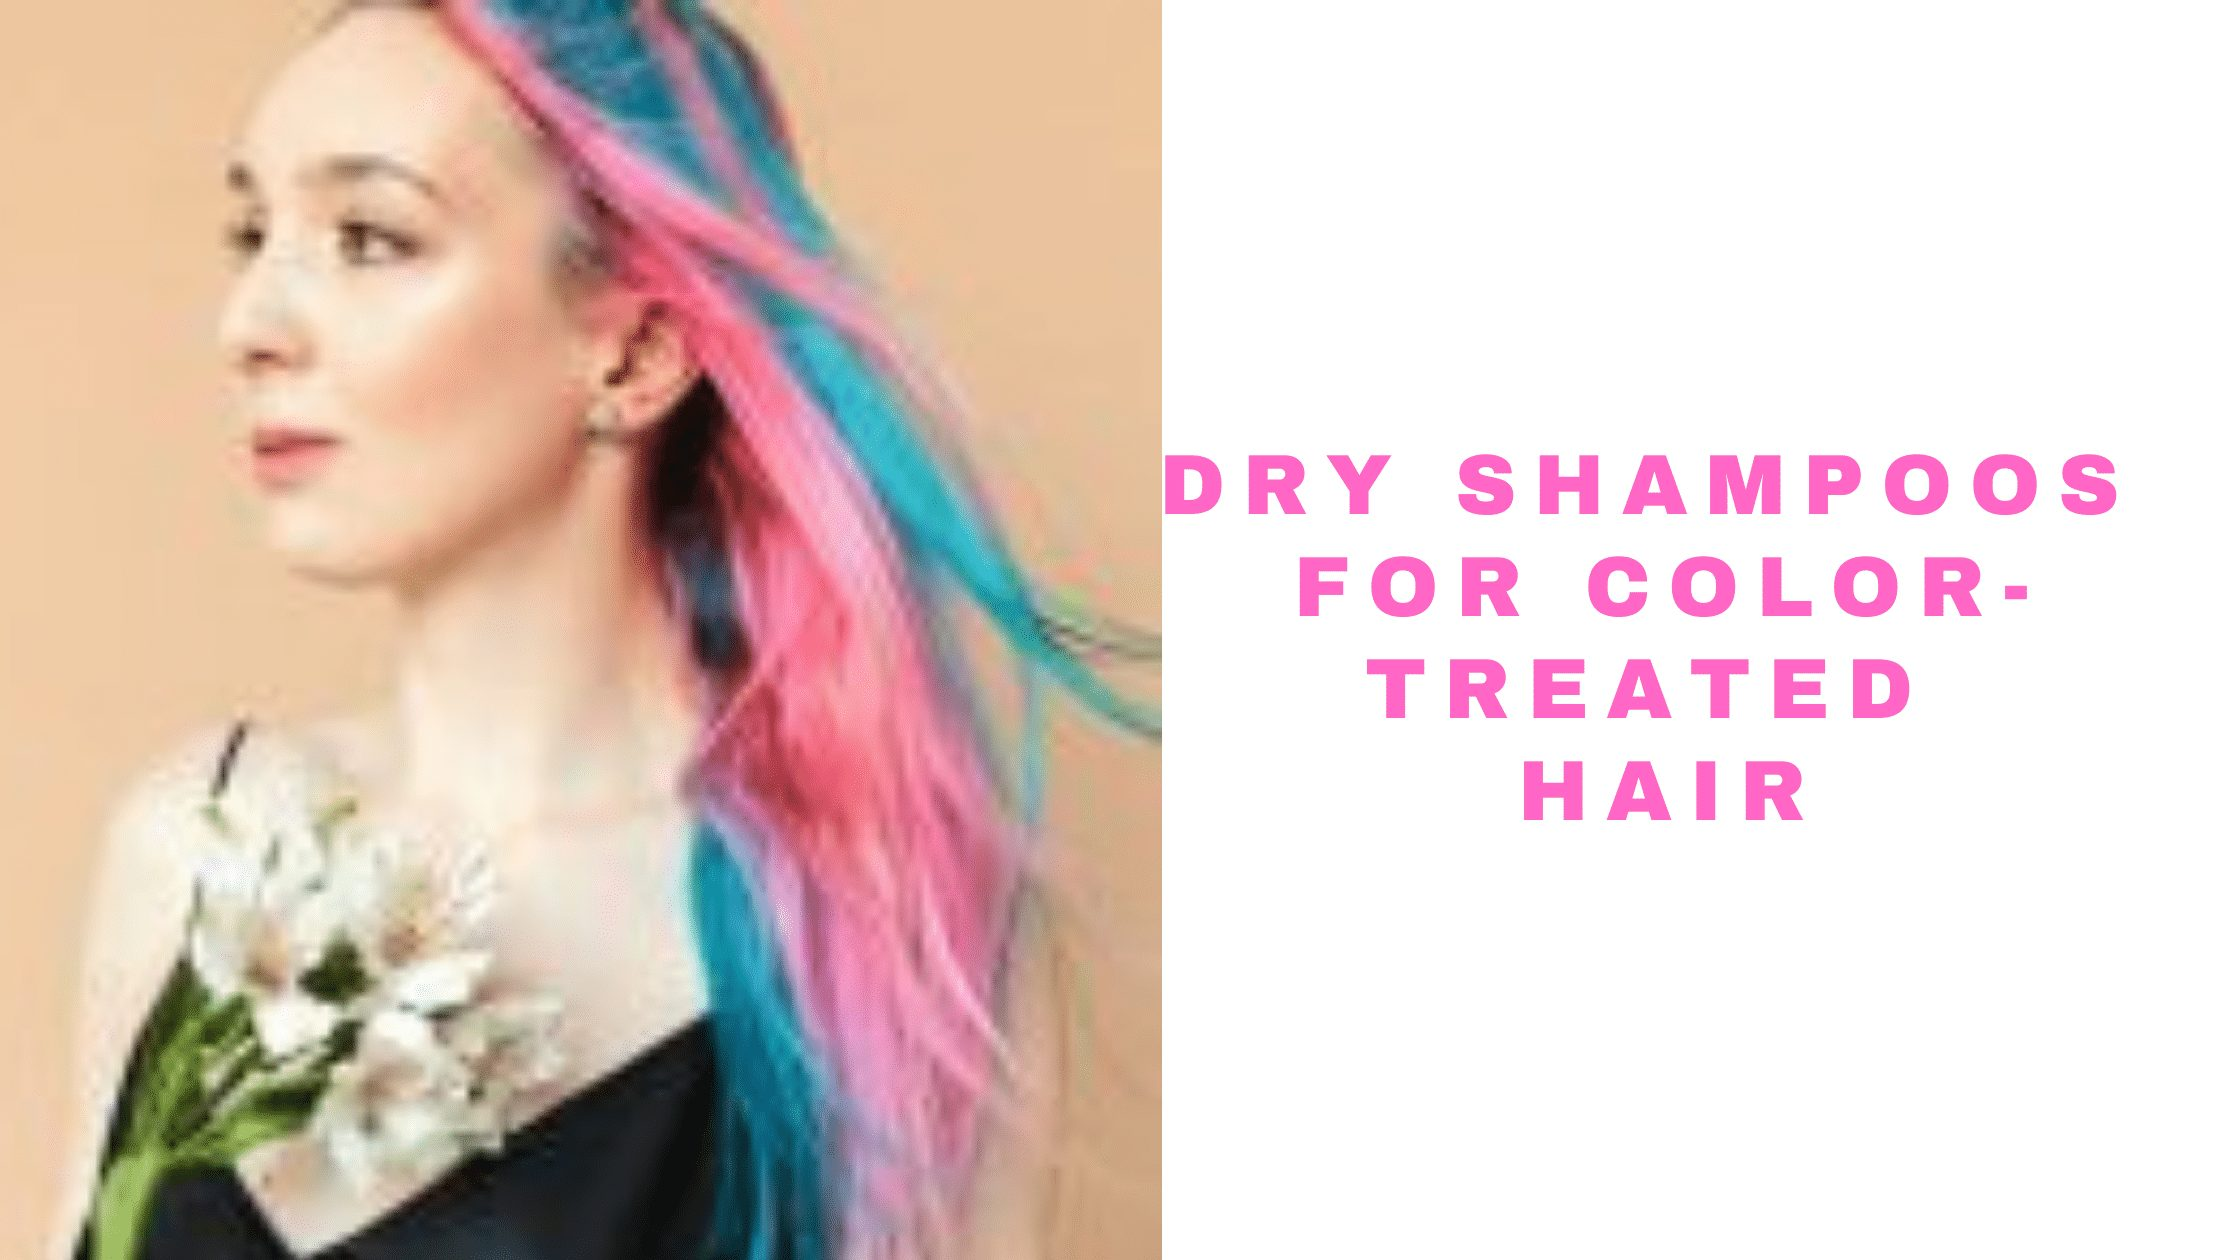 Best Dry Shampoos For Colored Hair 2021